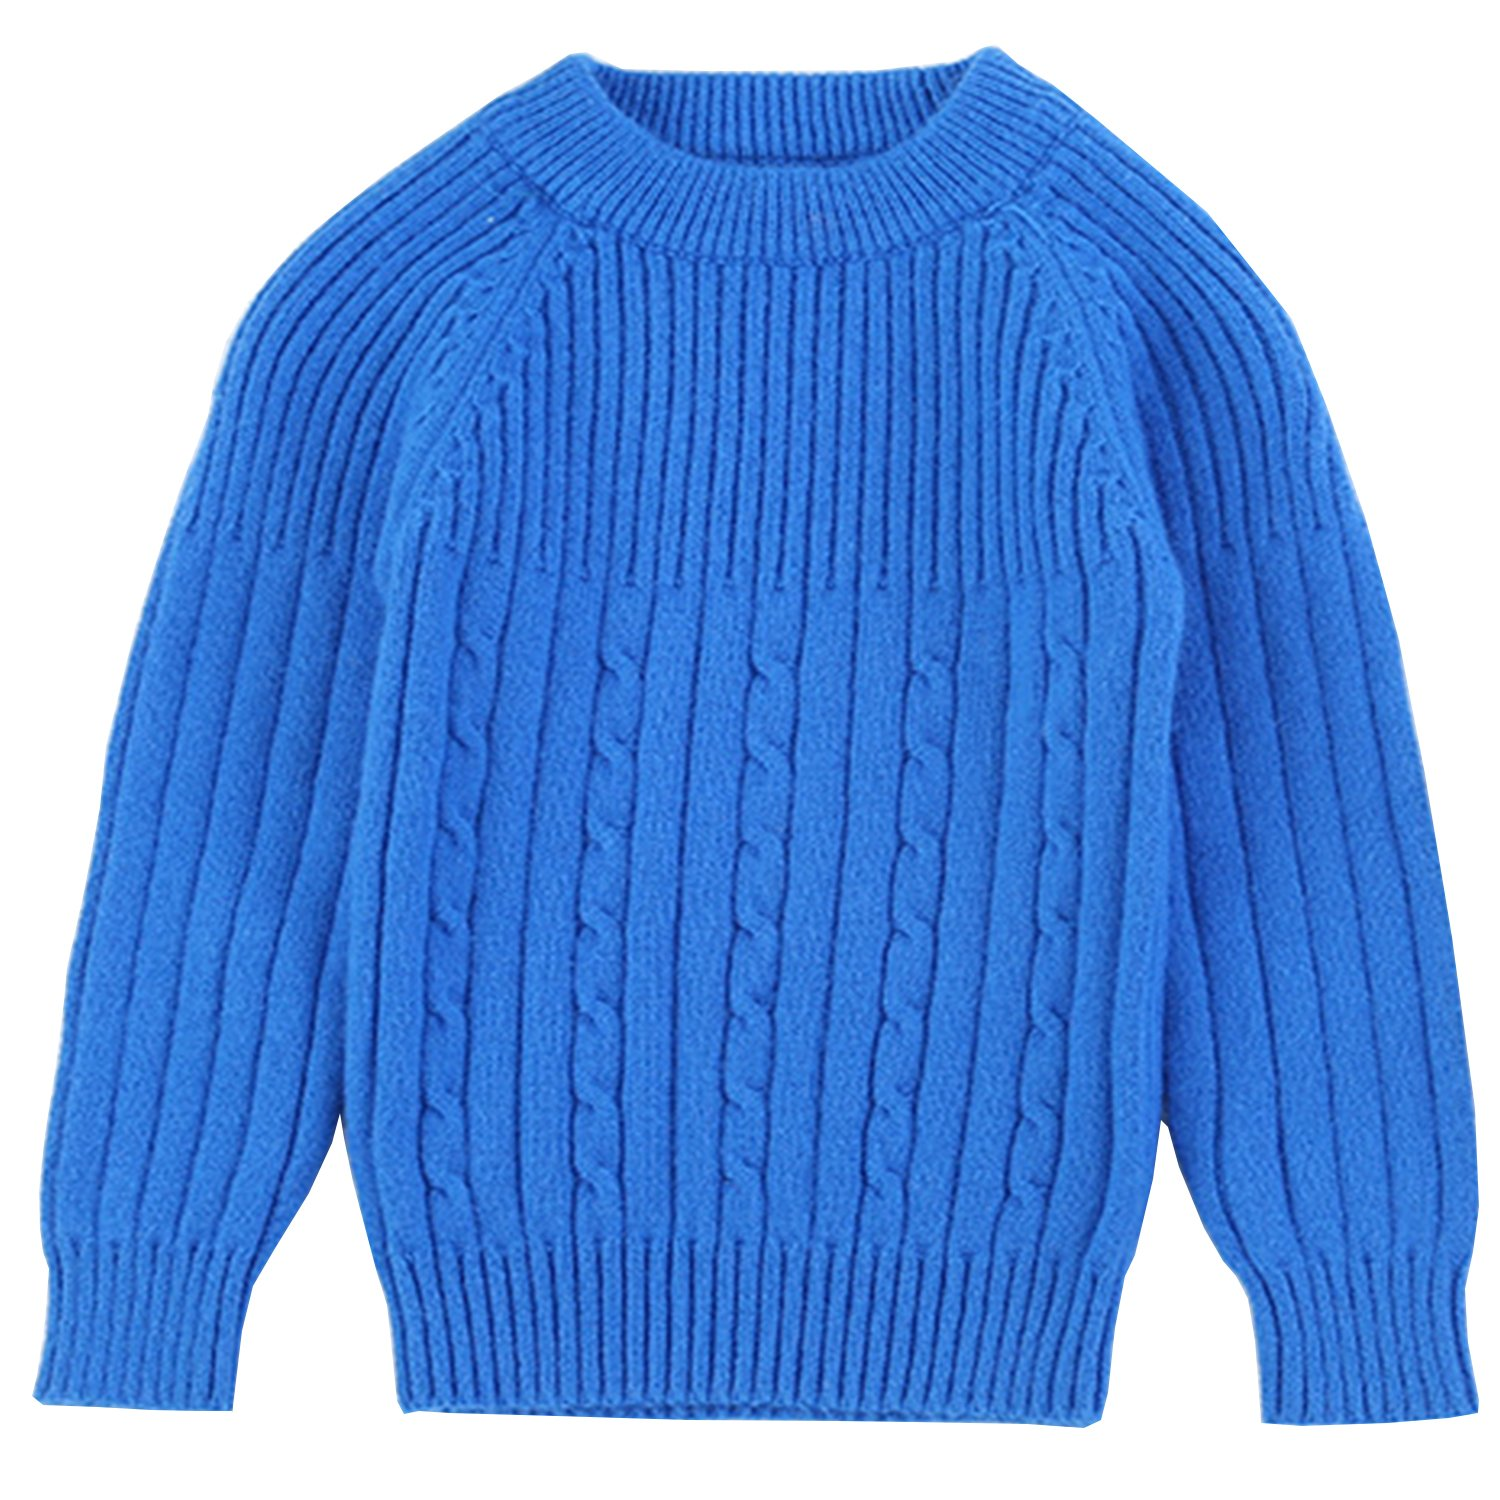 Euno Autumn and Winter Boy's Solid color round neck Natural cashmere Pullover Sweater Blue B140